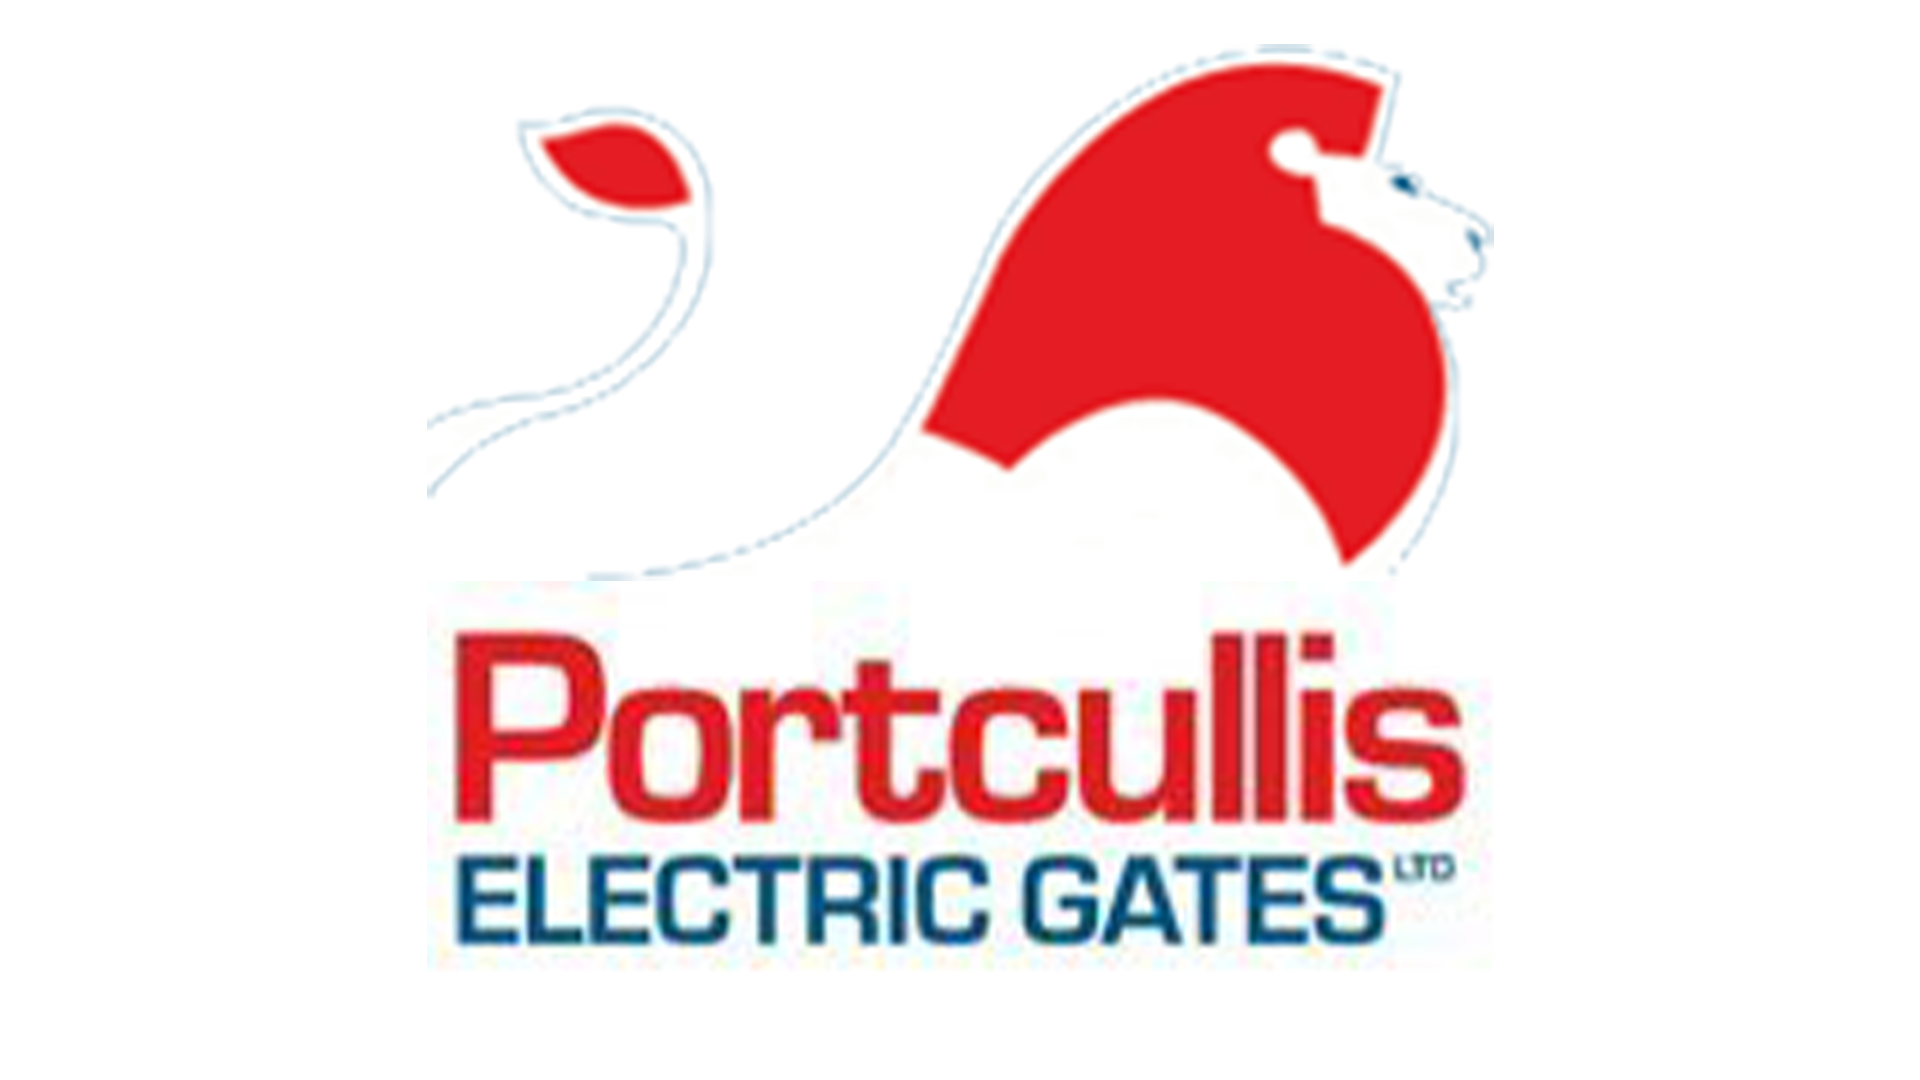 Portcullis Electric Gates, bespoke gate design in Farnham